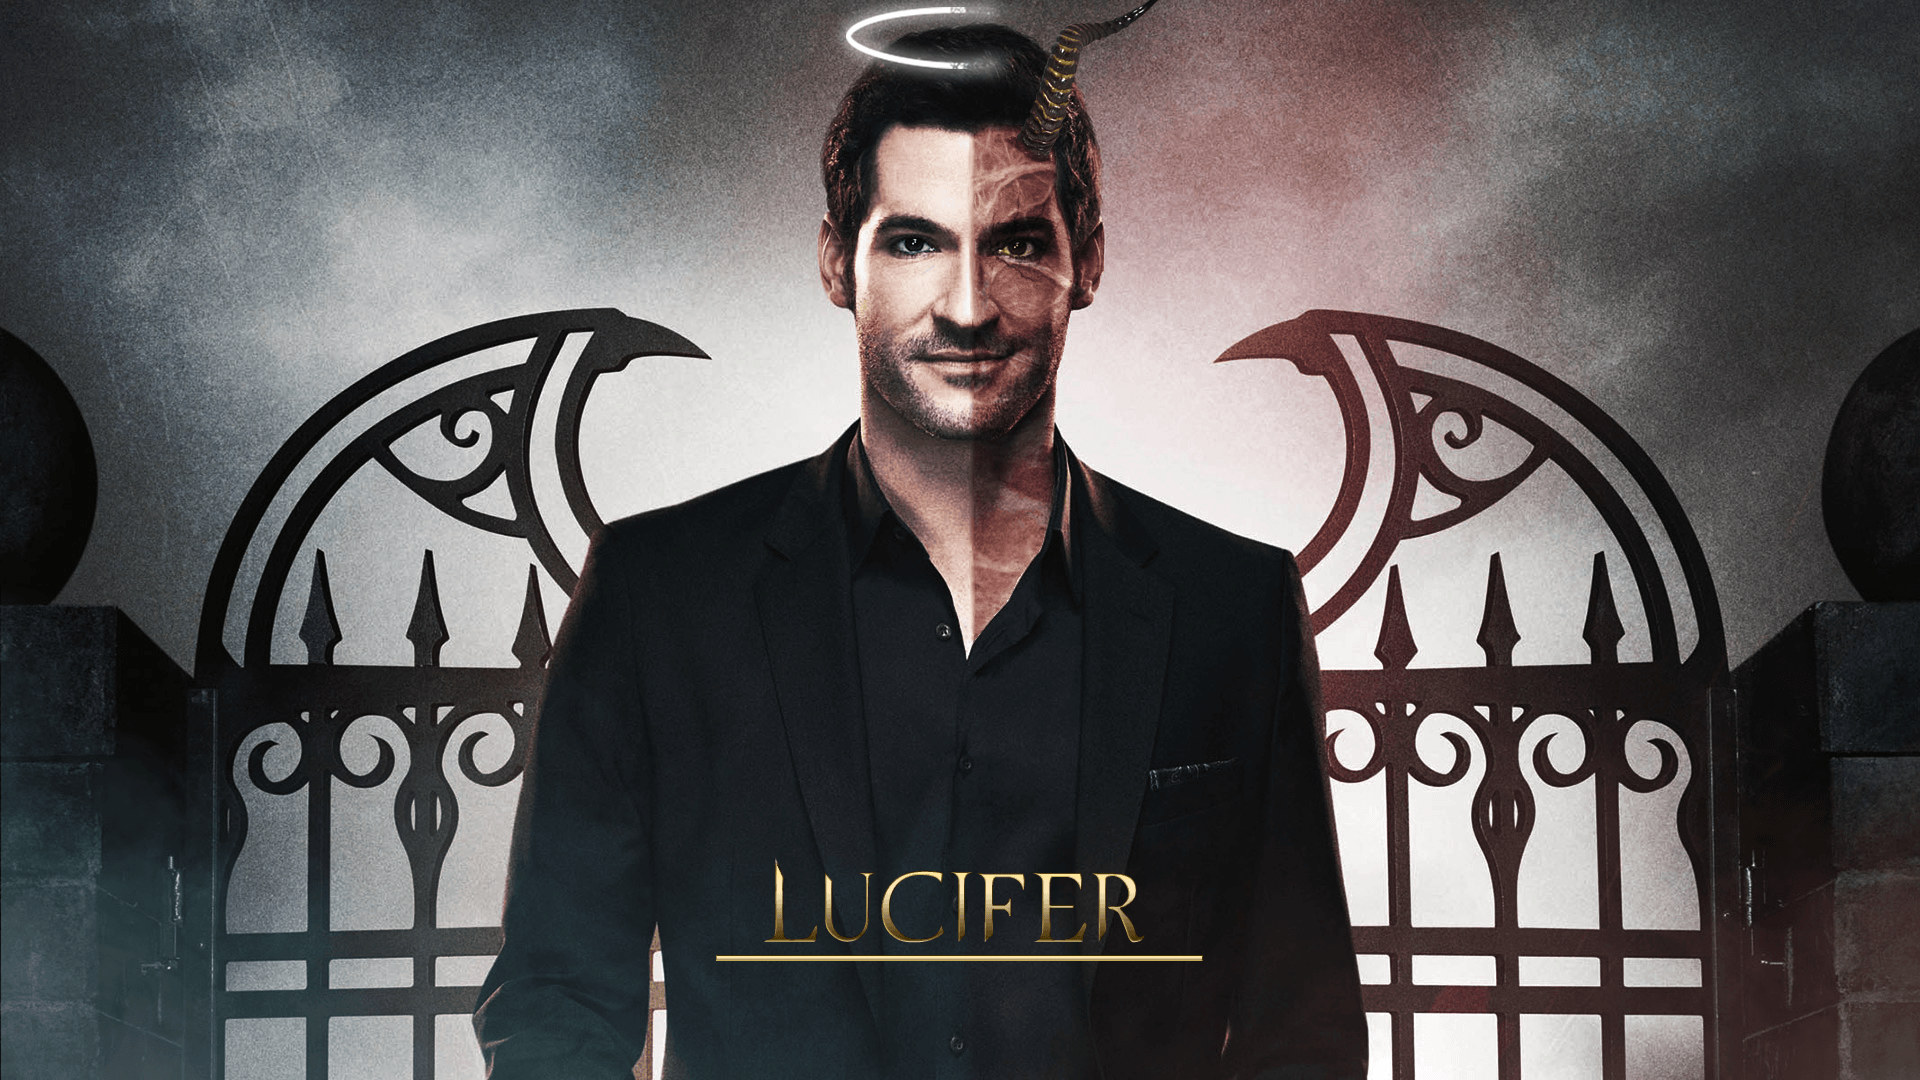 Lucifer Wallpaper Season 5 Of Lucifer Coming 1920x1080 Wallpaper Teahub Io